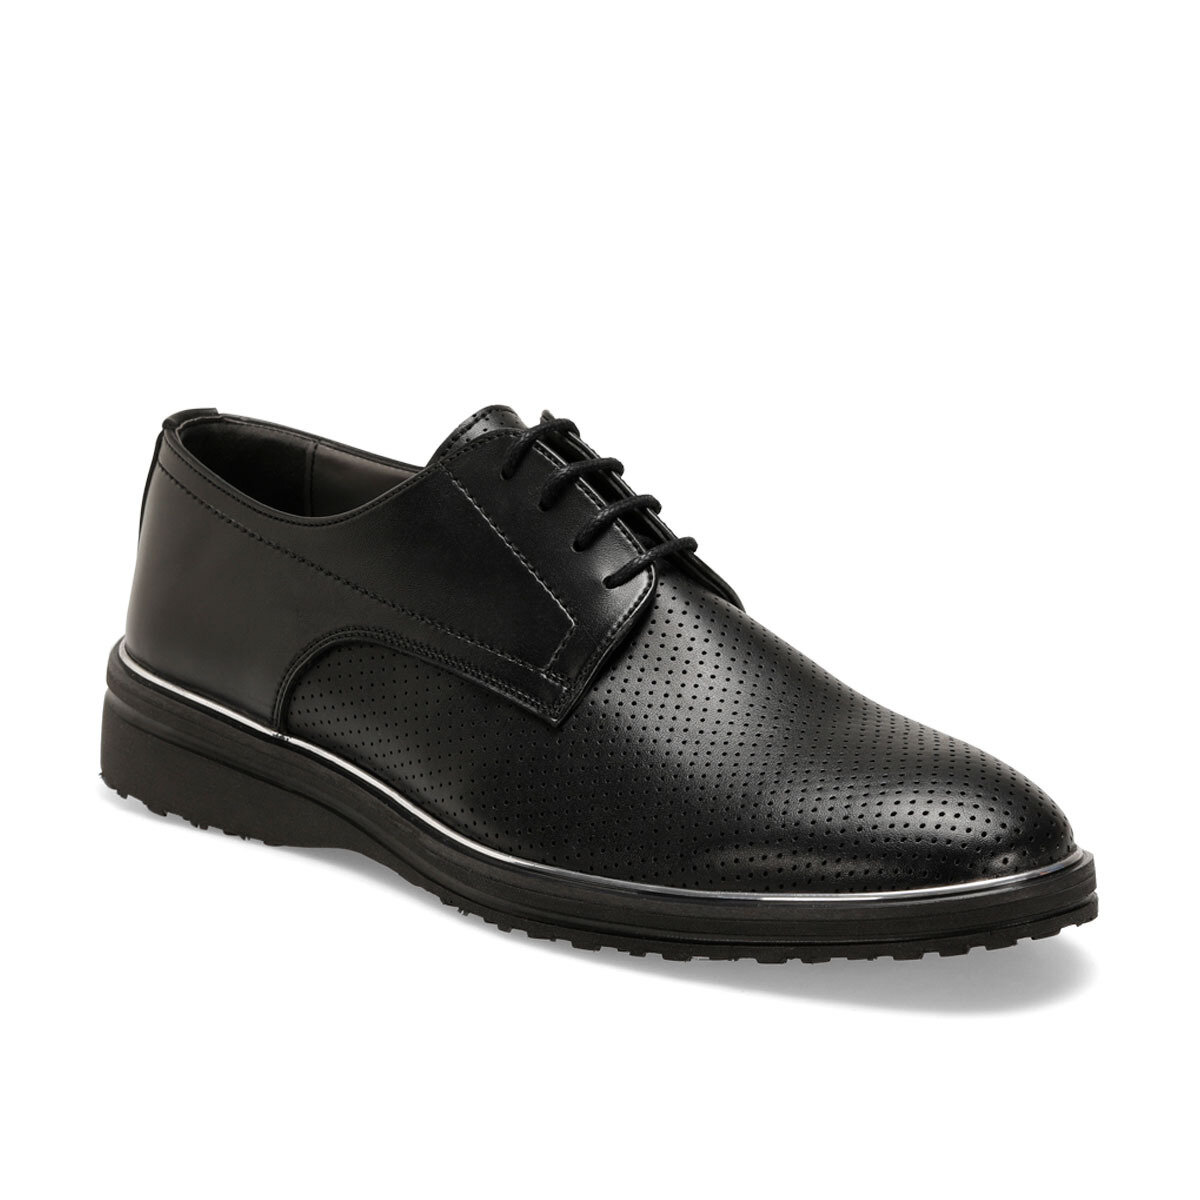 FLO 313-1 Black Men Dress Shoes JJ-Stiller